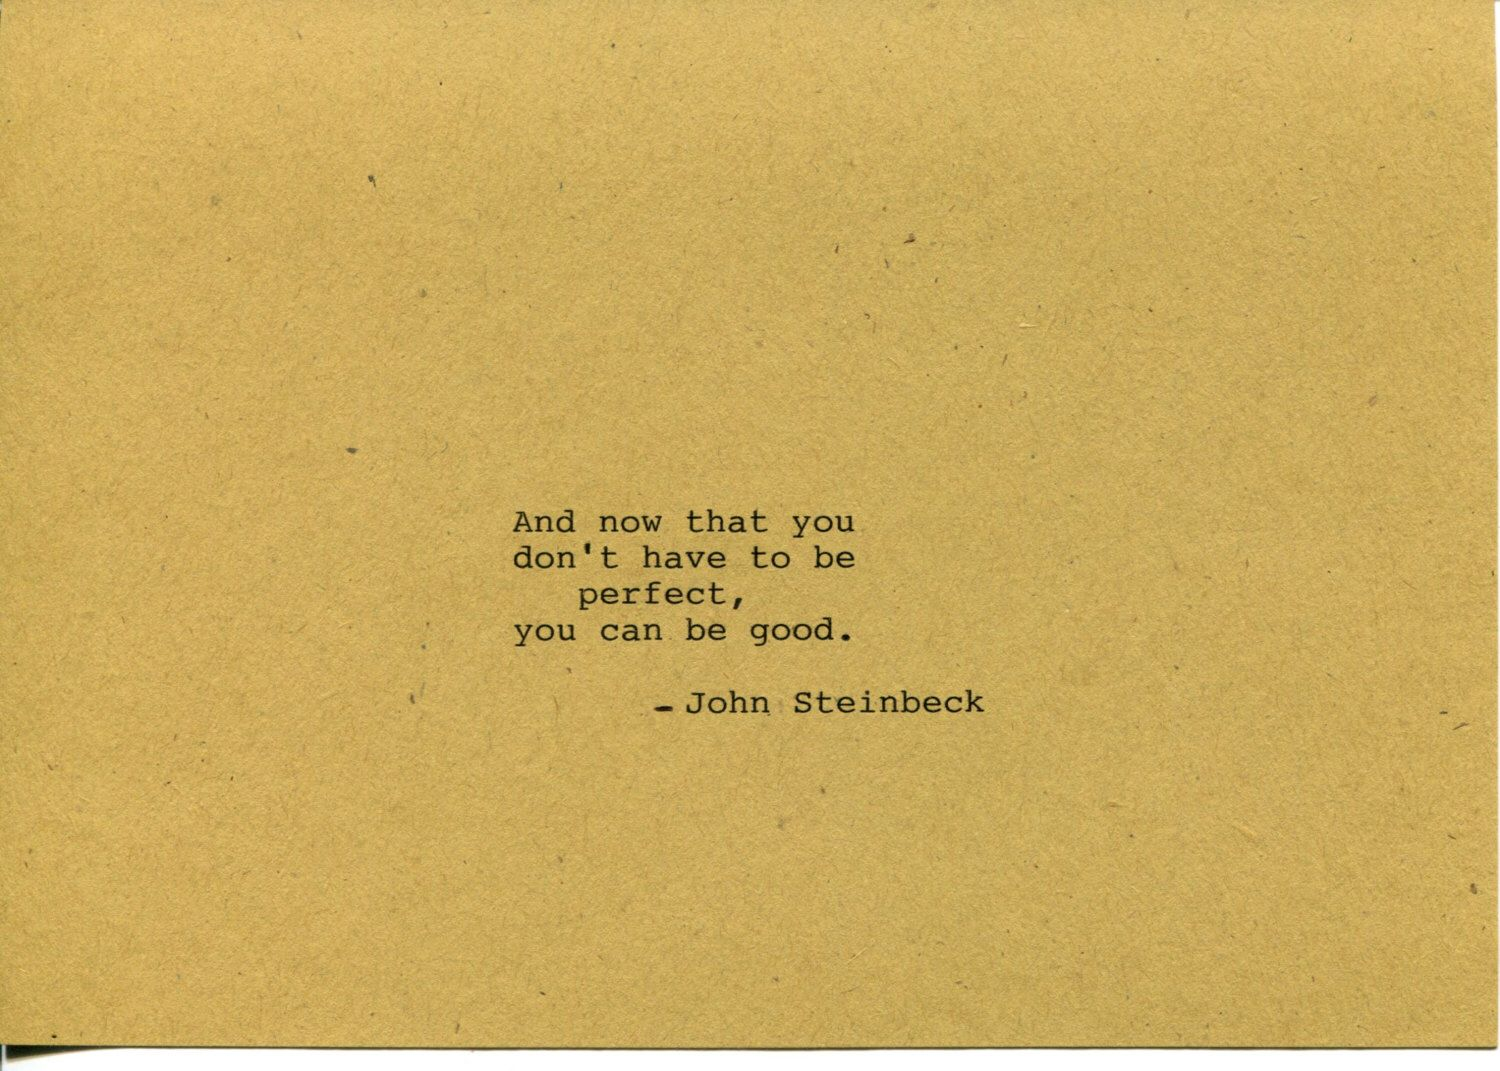 John Steinbeck Quote Made on Typewriter - East of Eden Classic Book ...